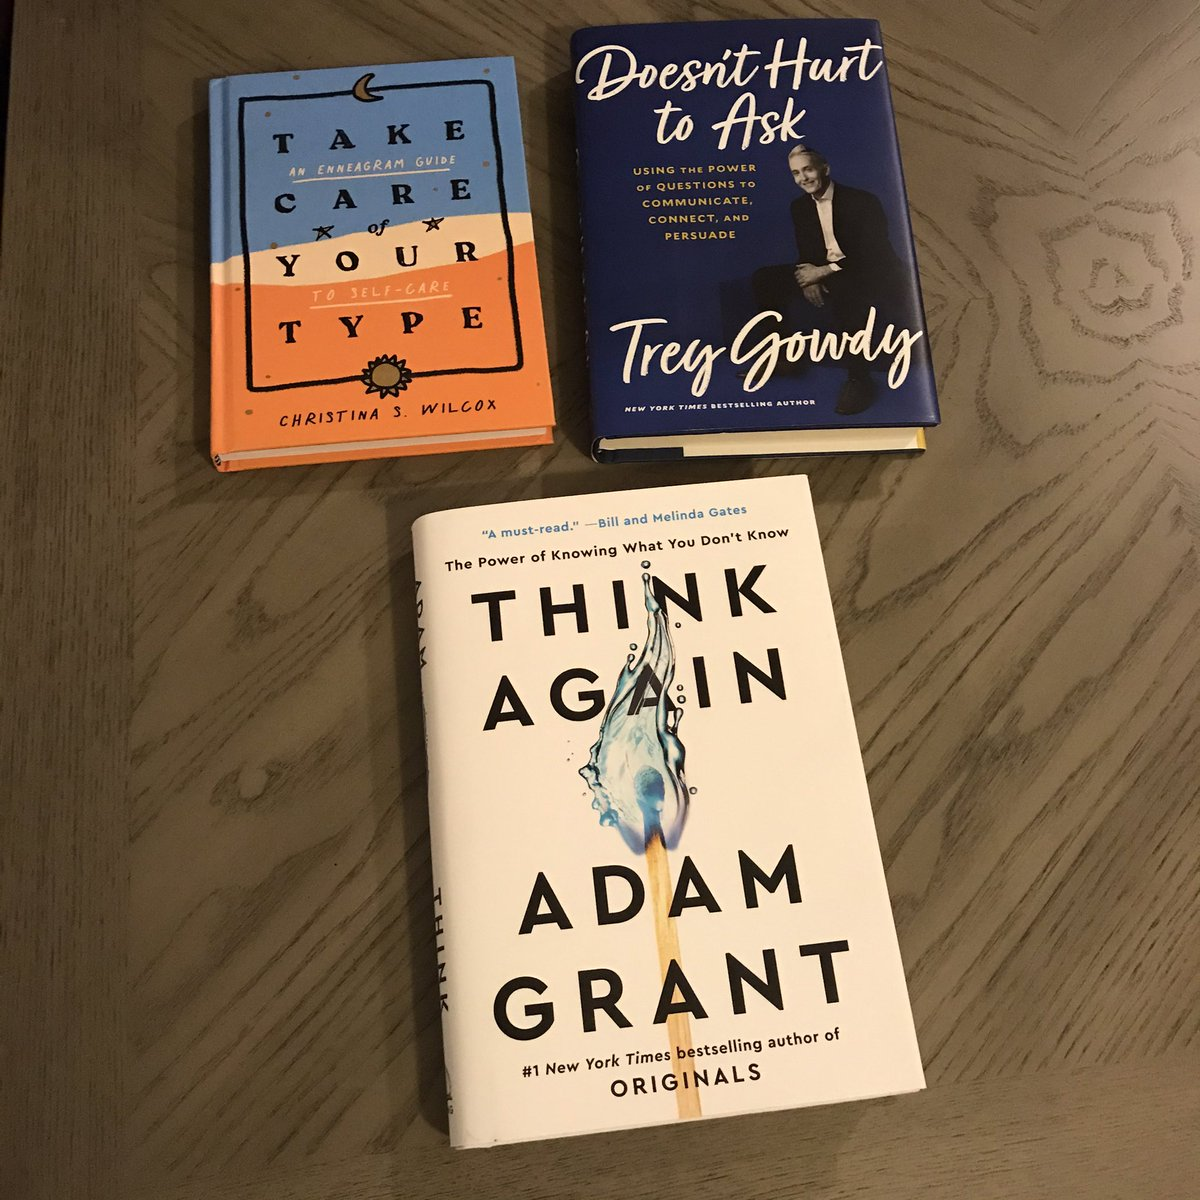 My reading list! 📚 Book on #Enneagram - such an insightful read! Already finished on my flights to Florida. 🌊 The brilliant @AdamMGrant new 📖book! Next up - @TGowdySC new release Thanks @DanaPerino for suggestions and to my wife, Nicole, for these great gifts!